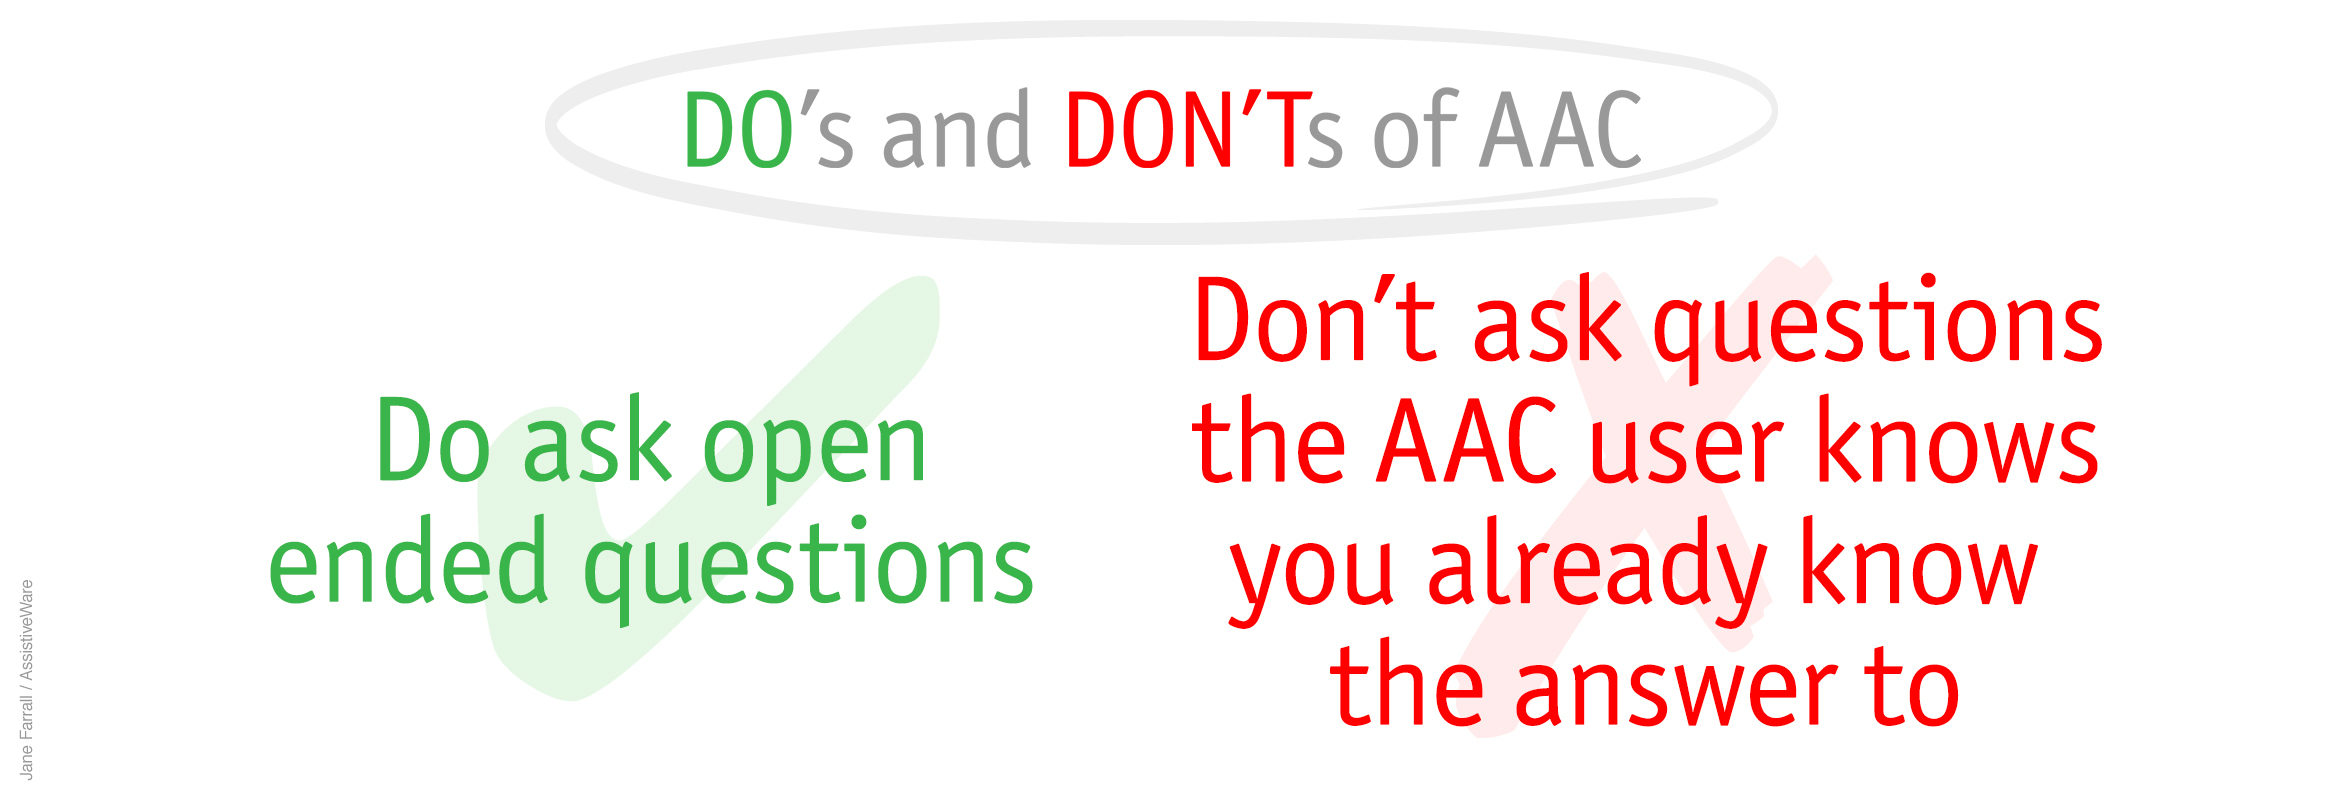 Do's and Don'ts of AAC - Questions